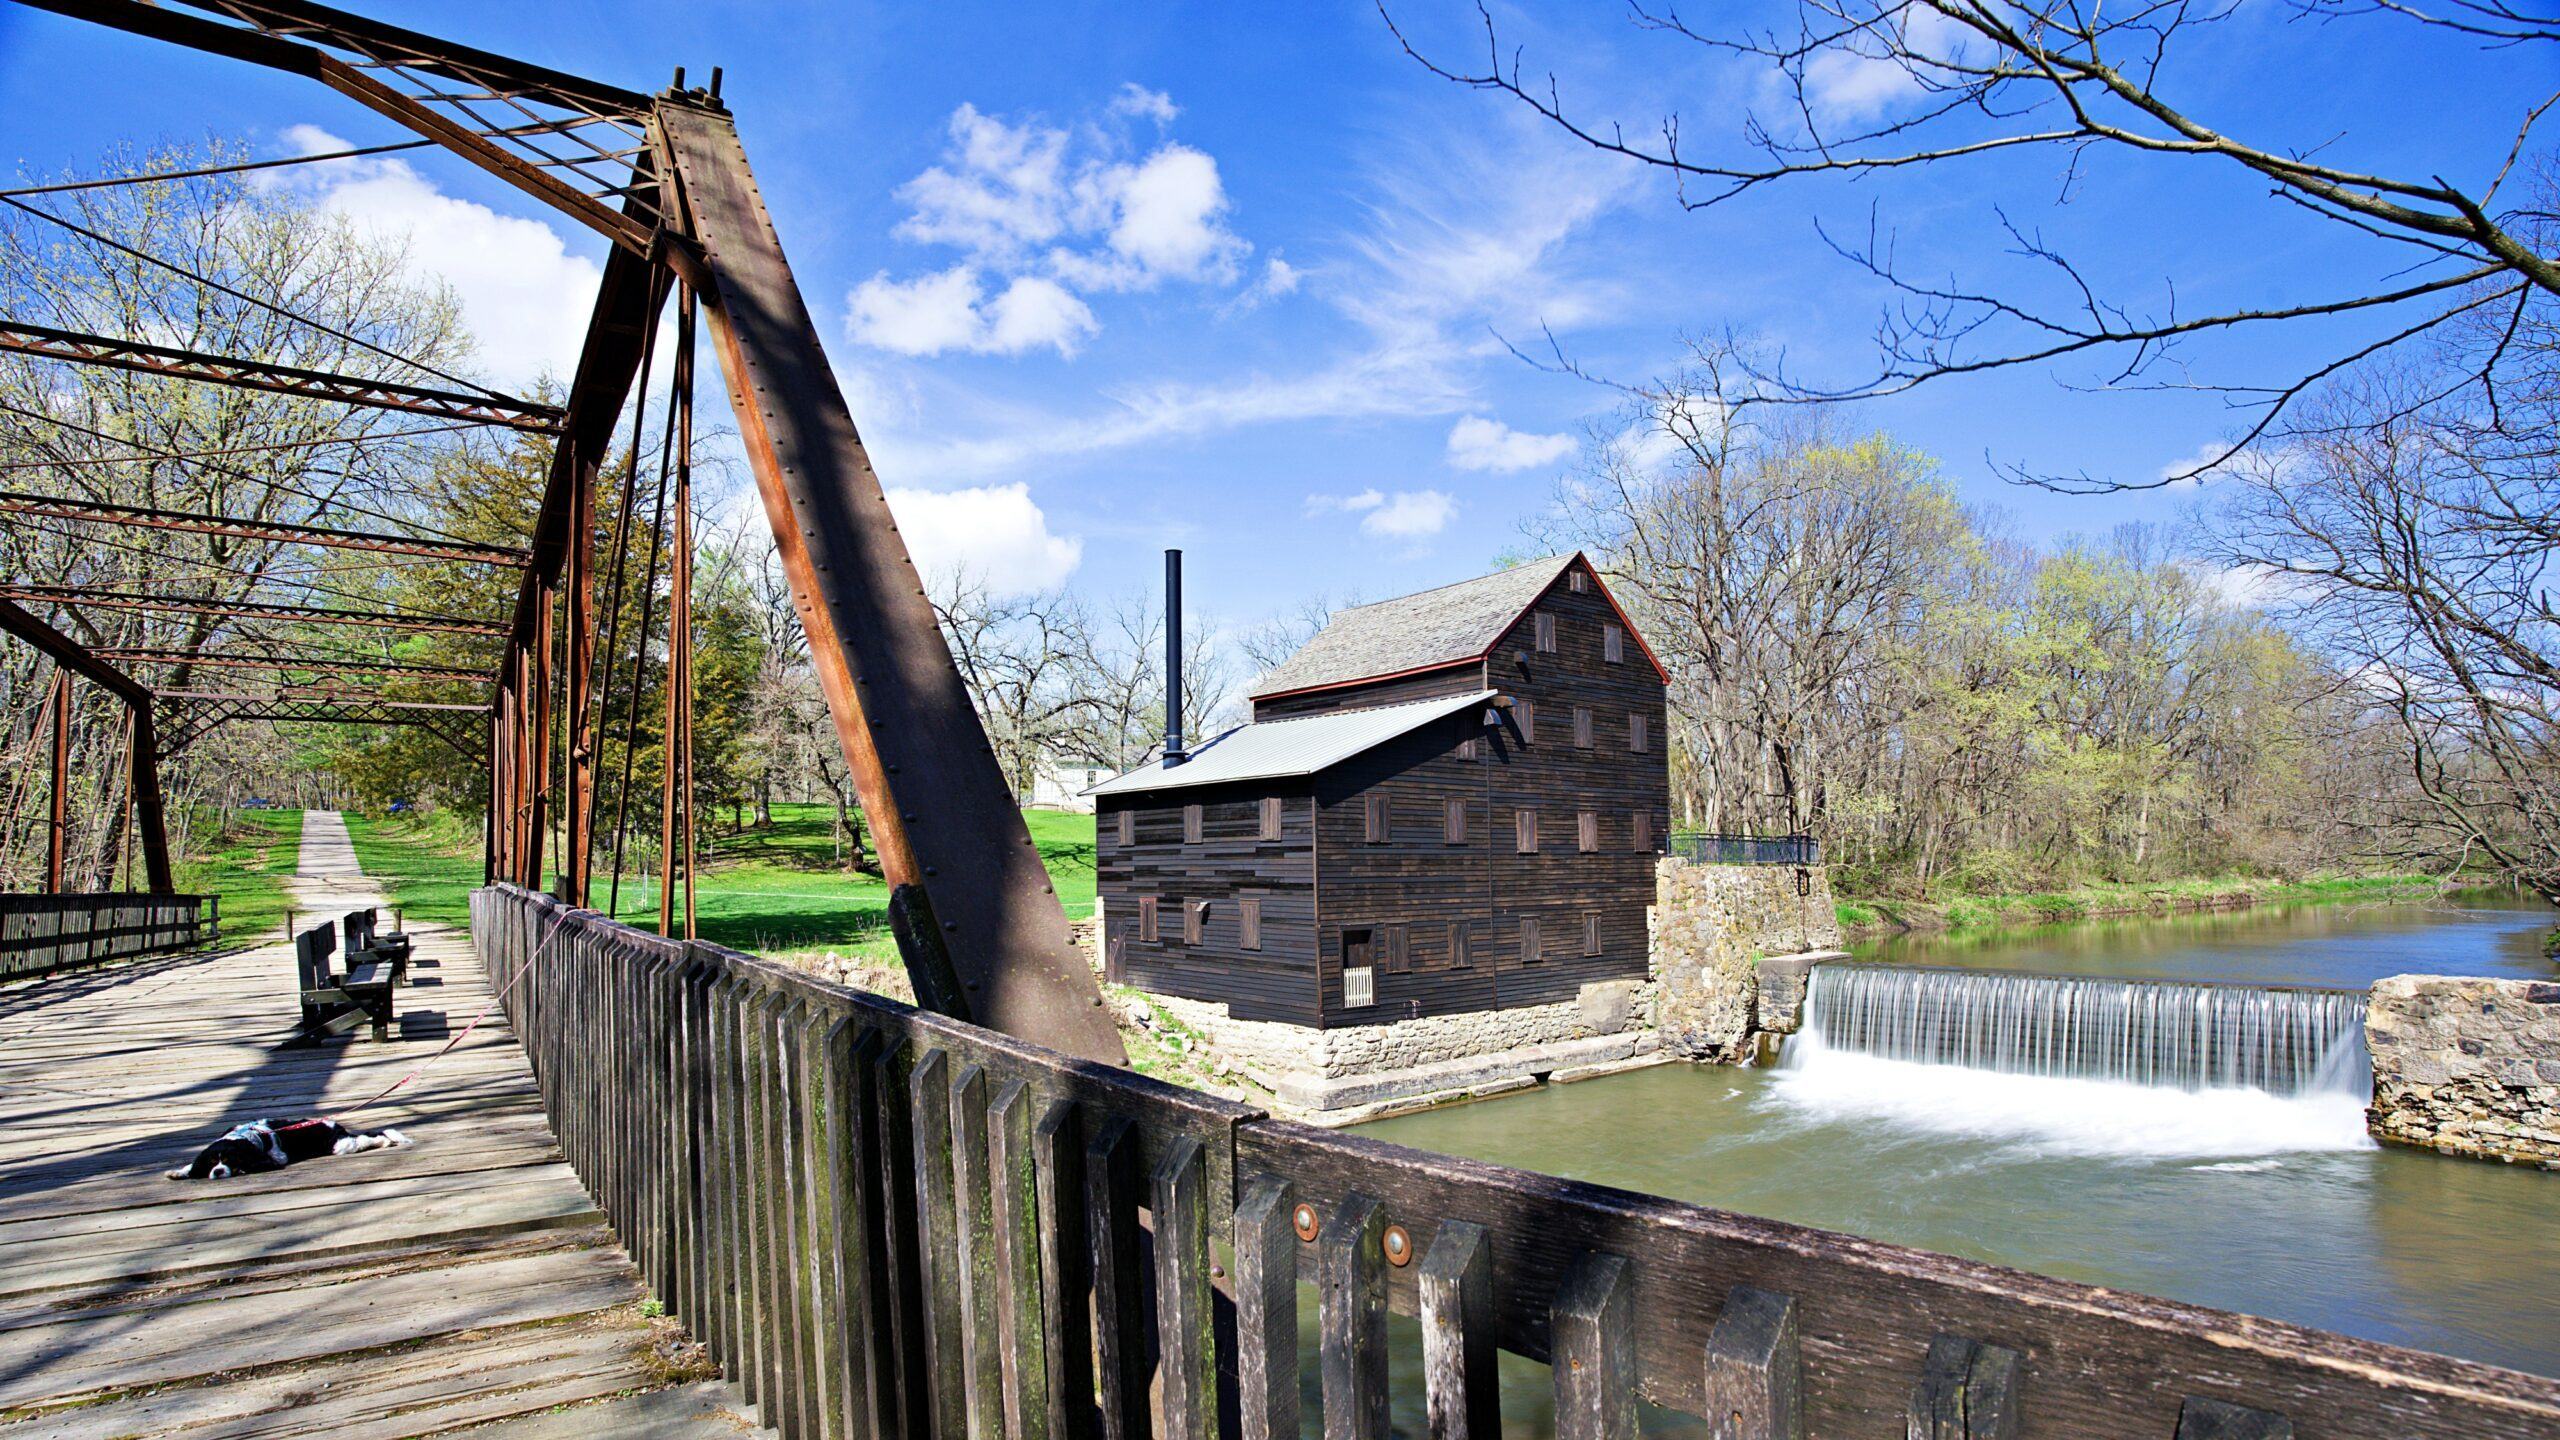 Pine Creek Grist Mill - one of the free things to do and see in Muscatine